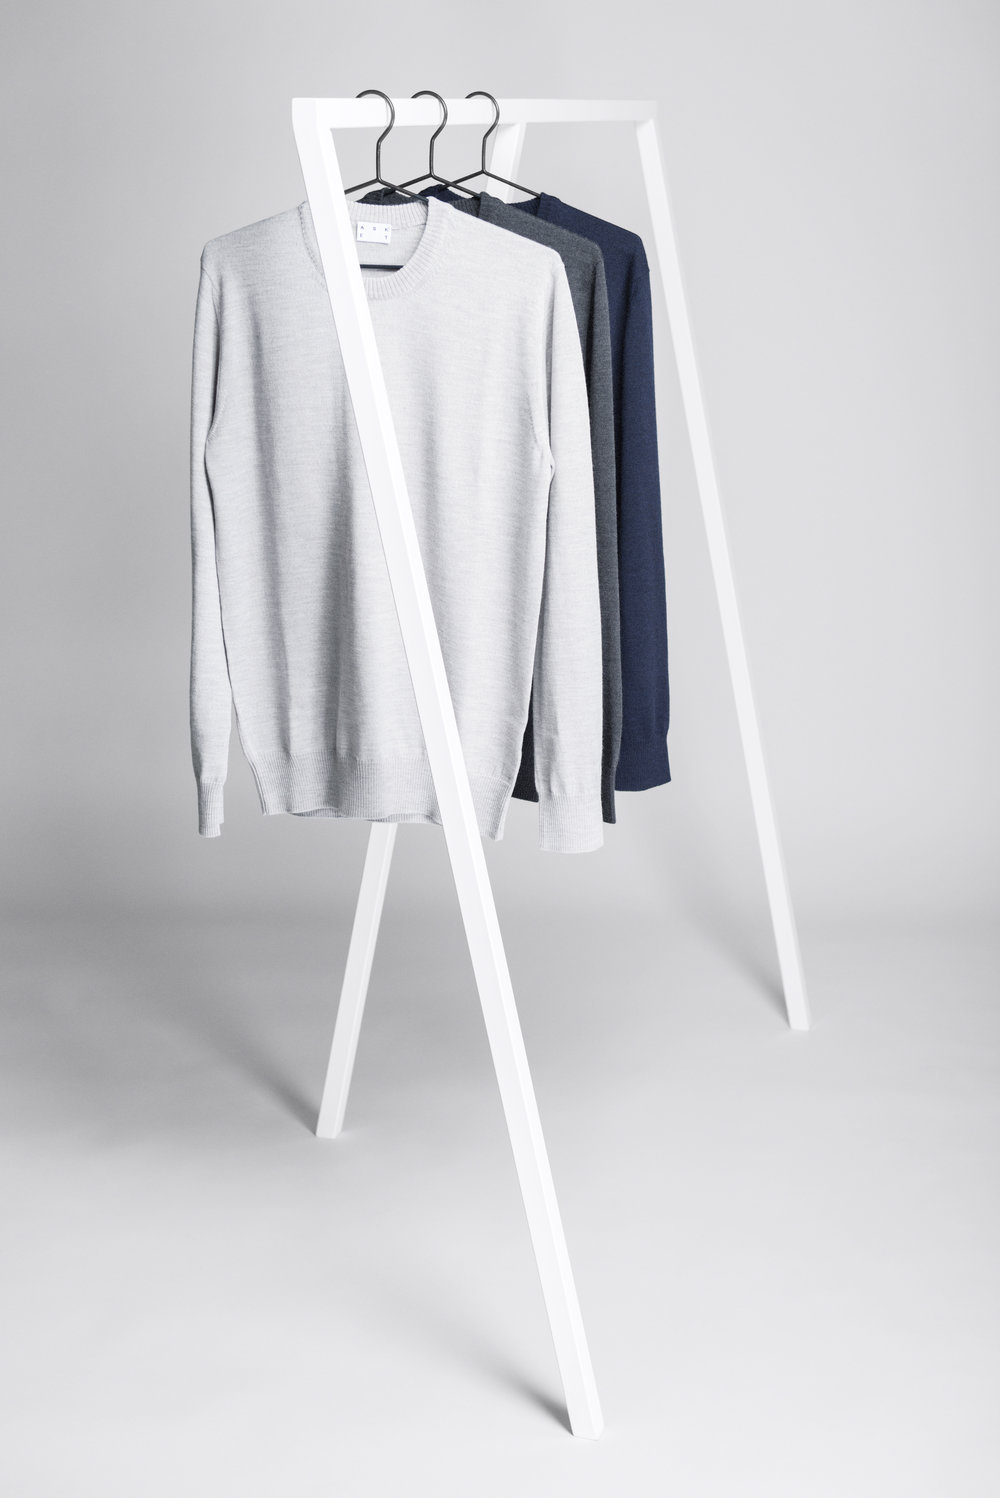 Extra-Fine Australian Merino Wool Sweater by ASKET | Stockholm € 95 LEARN MORE